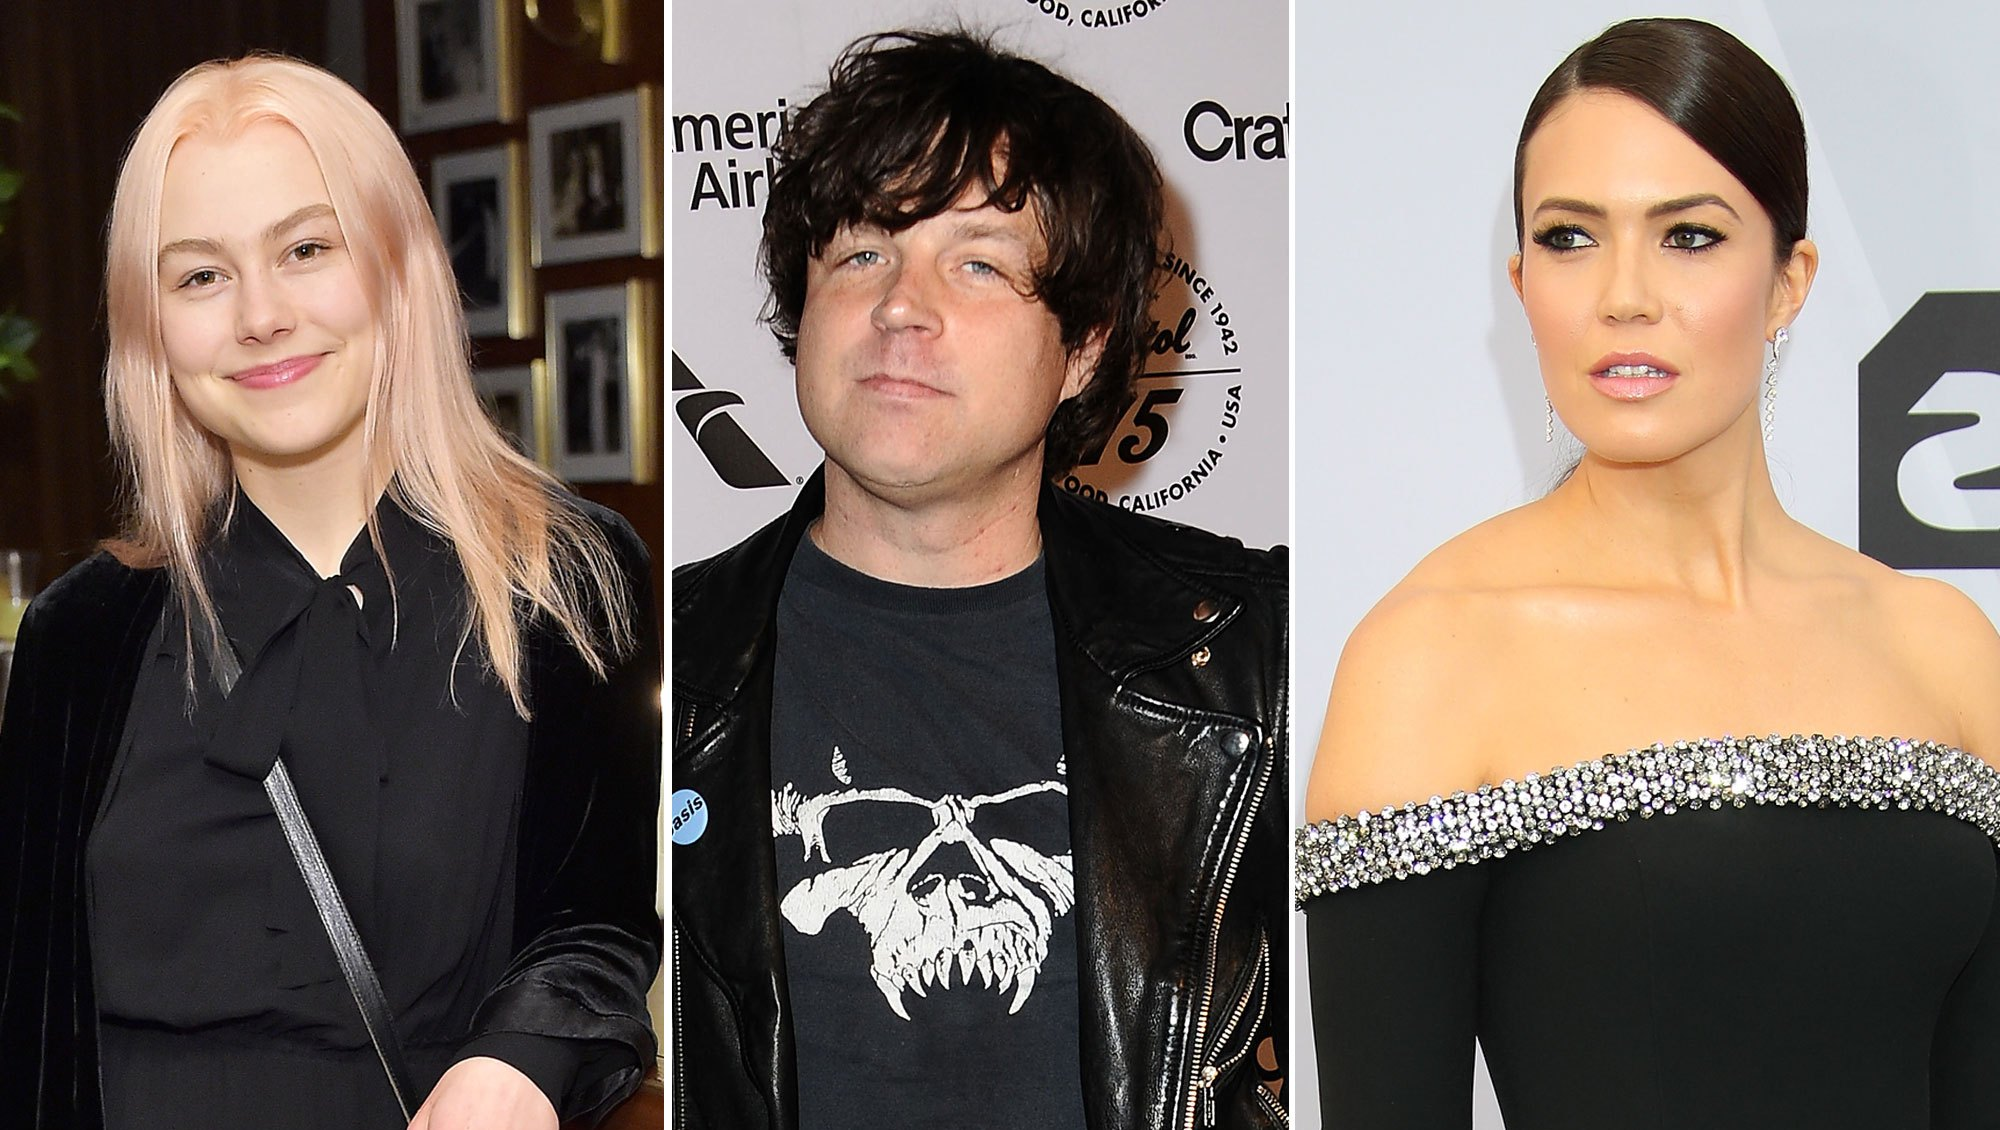 Phoebe Bridgers Speaks Out After Ryan Adams Claims, Gets Support from Mandy Moore